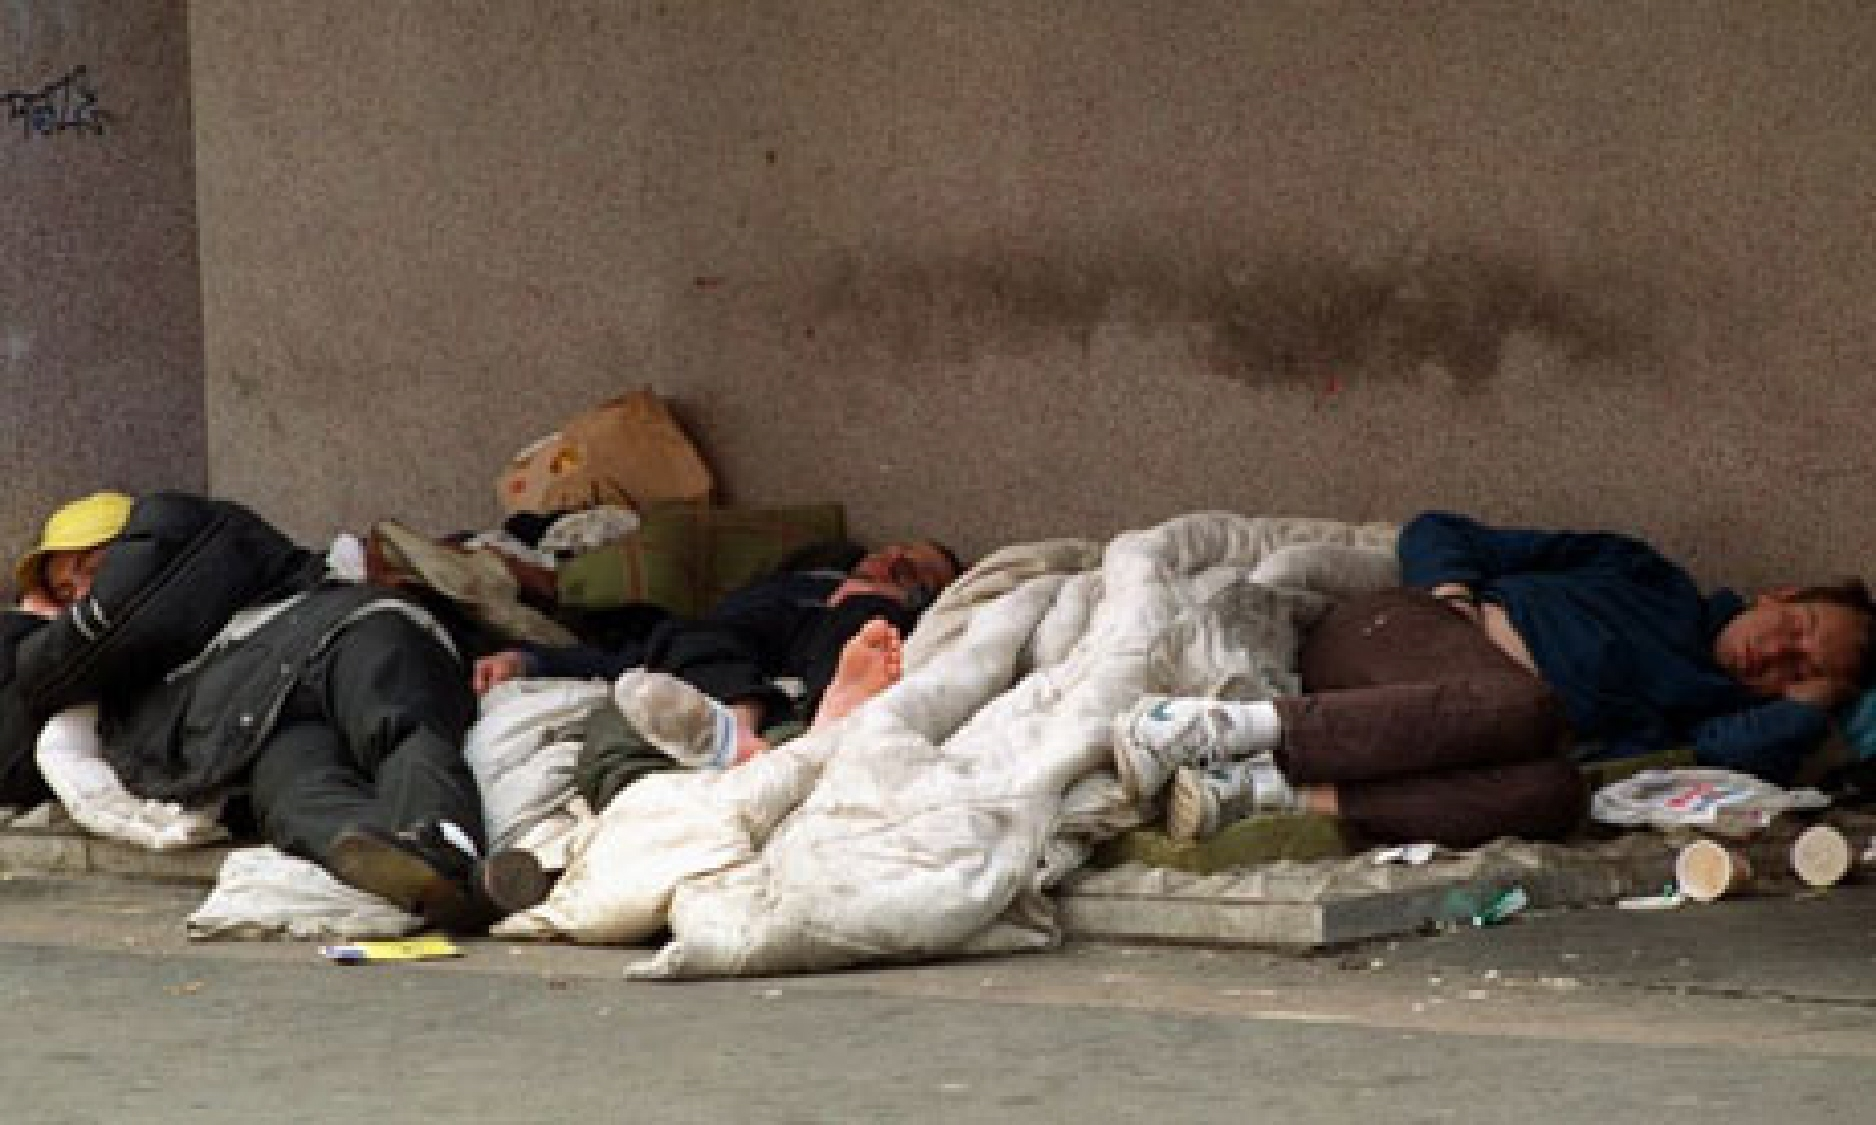 homelessness in america Homelessness is a reality for many families with young children in our country in fact, infancy is the period of life when a person is at highest risk of living in a homeless shelter in the united states (us.